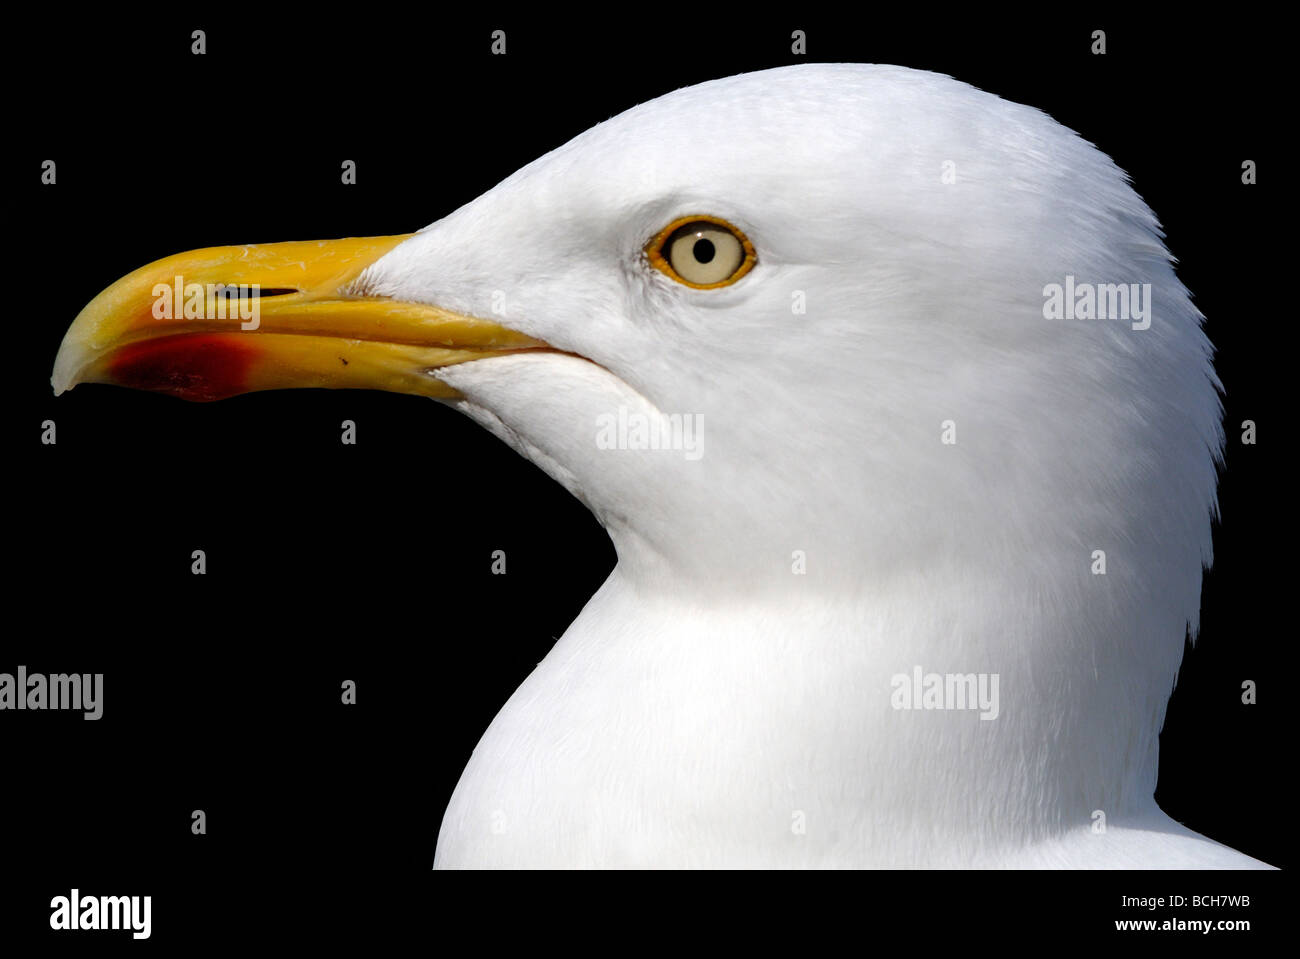 Portrait of a Herring Gull (Larus argentatus). Stock Photo